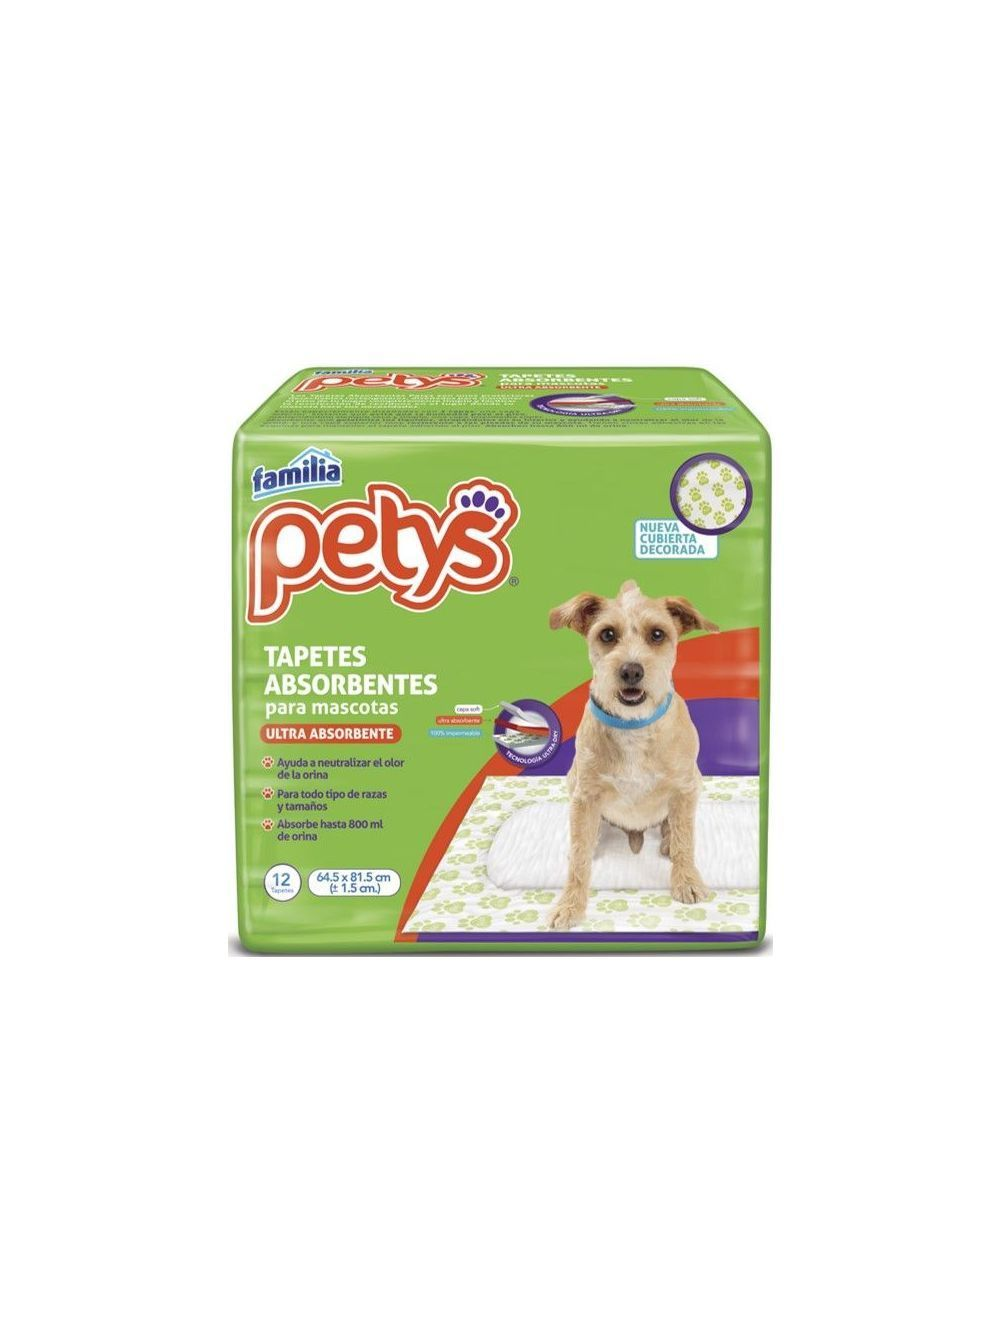 Petys Tapetes Absorbentes Paquete x 12 tapetes